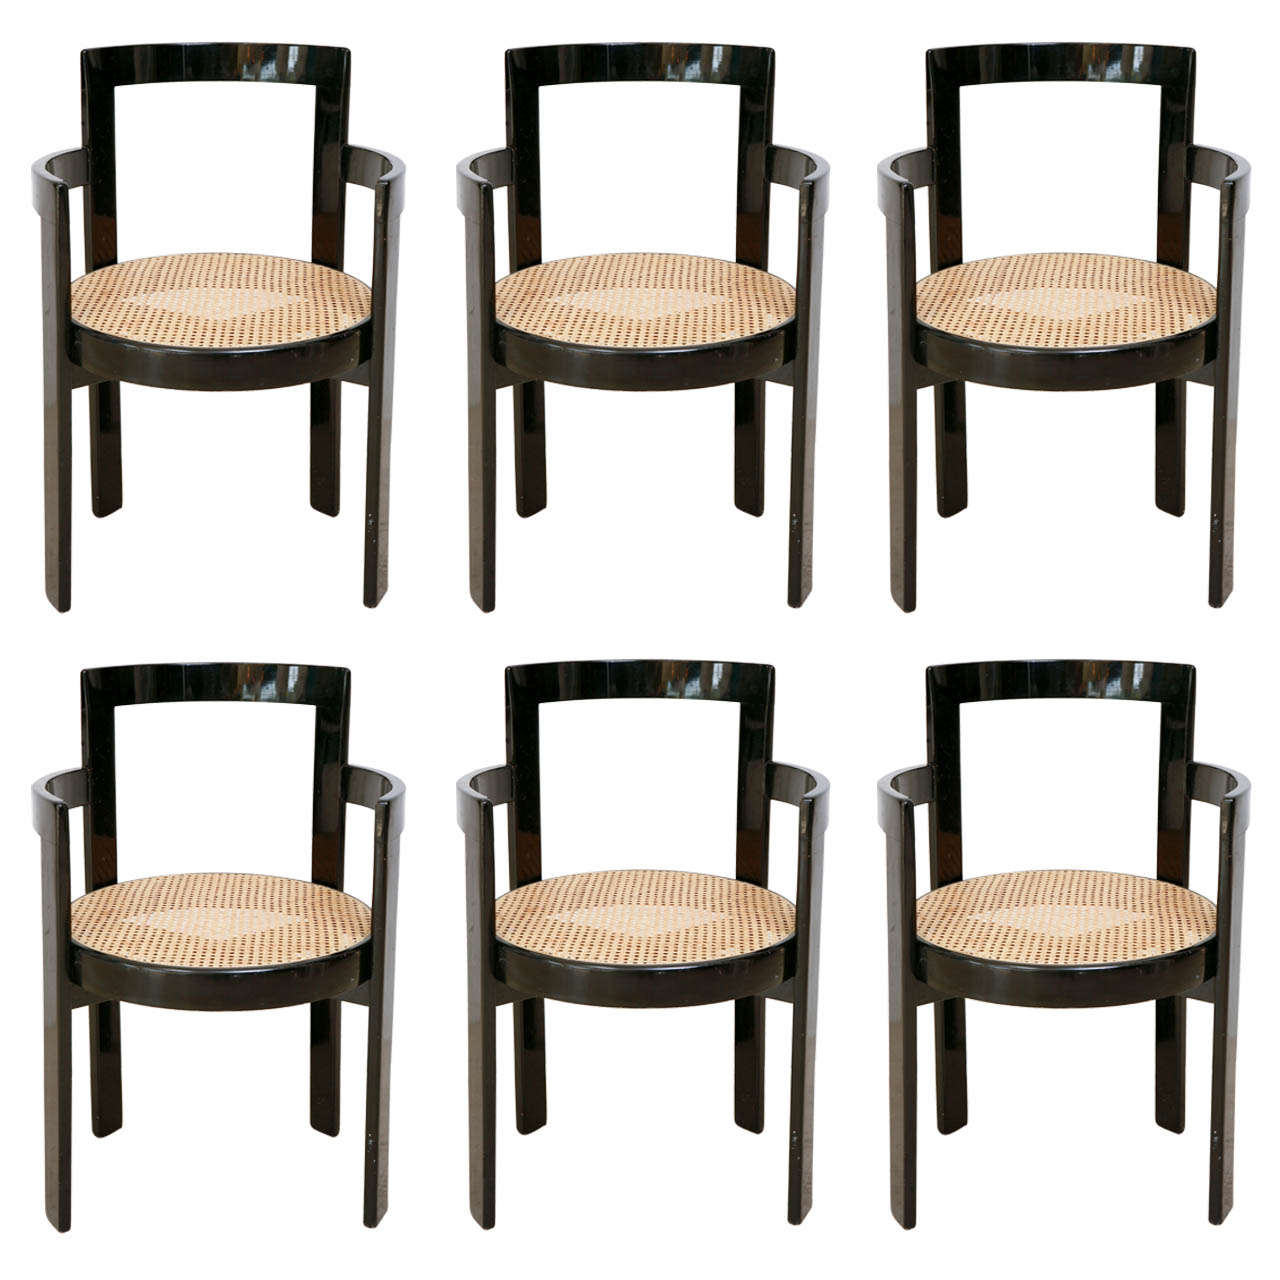 Set Of 6 Black Lacquer And Cane Thonet Chairs 1